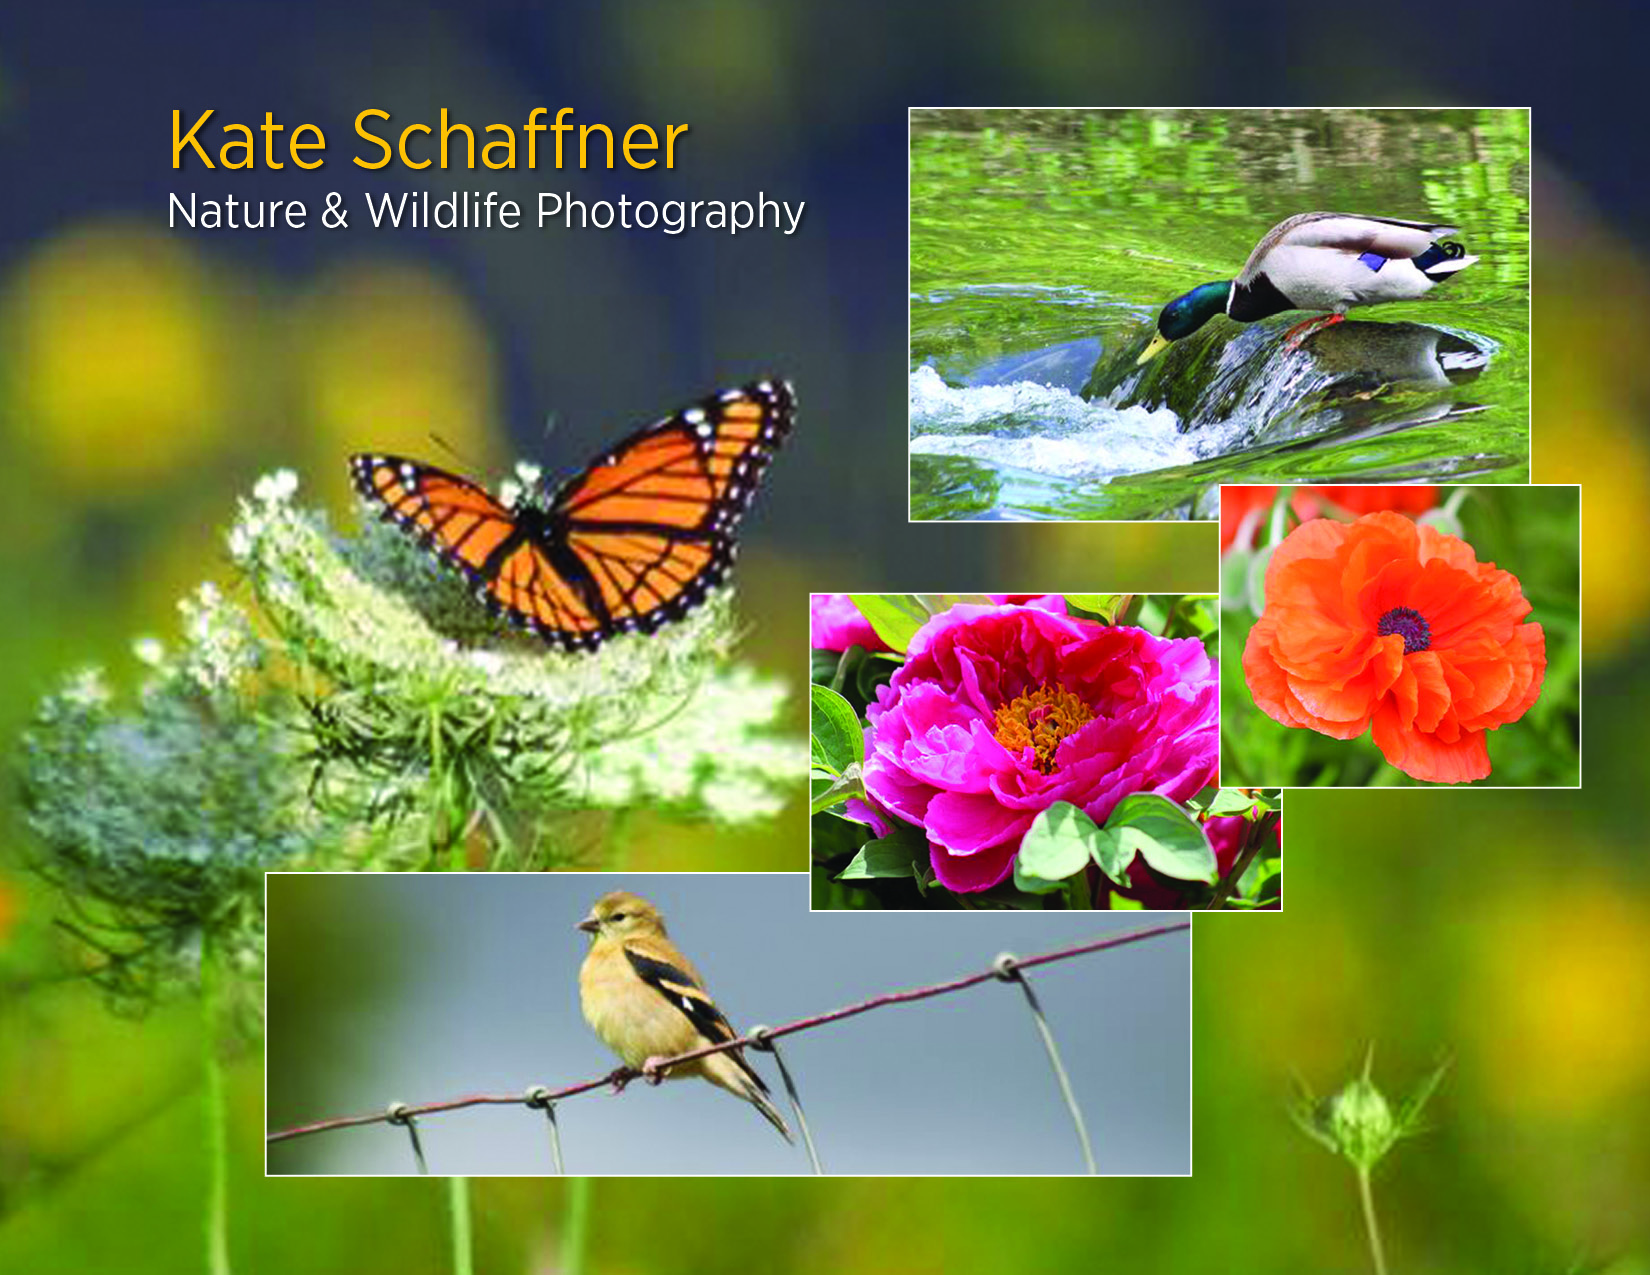 Kate Schaffner Nature & Wildlife Photography